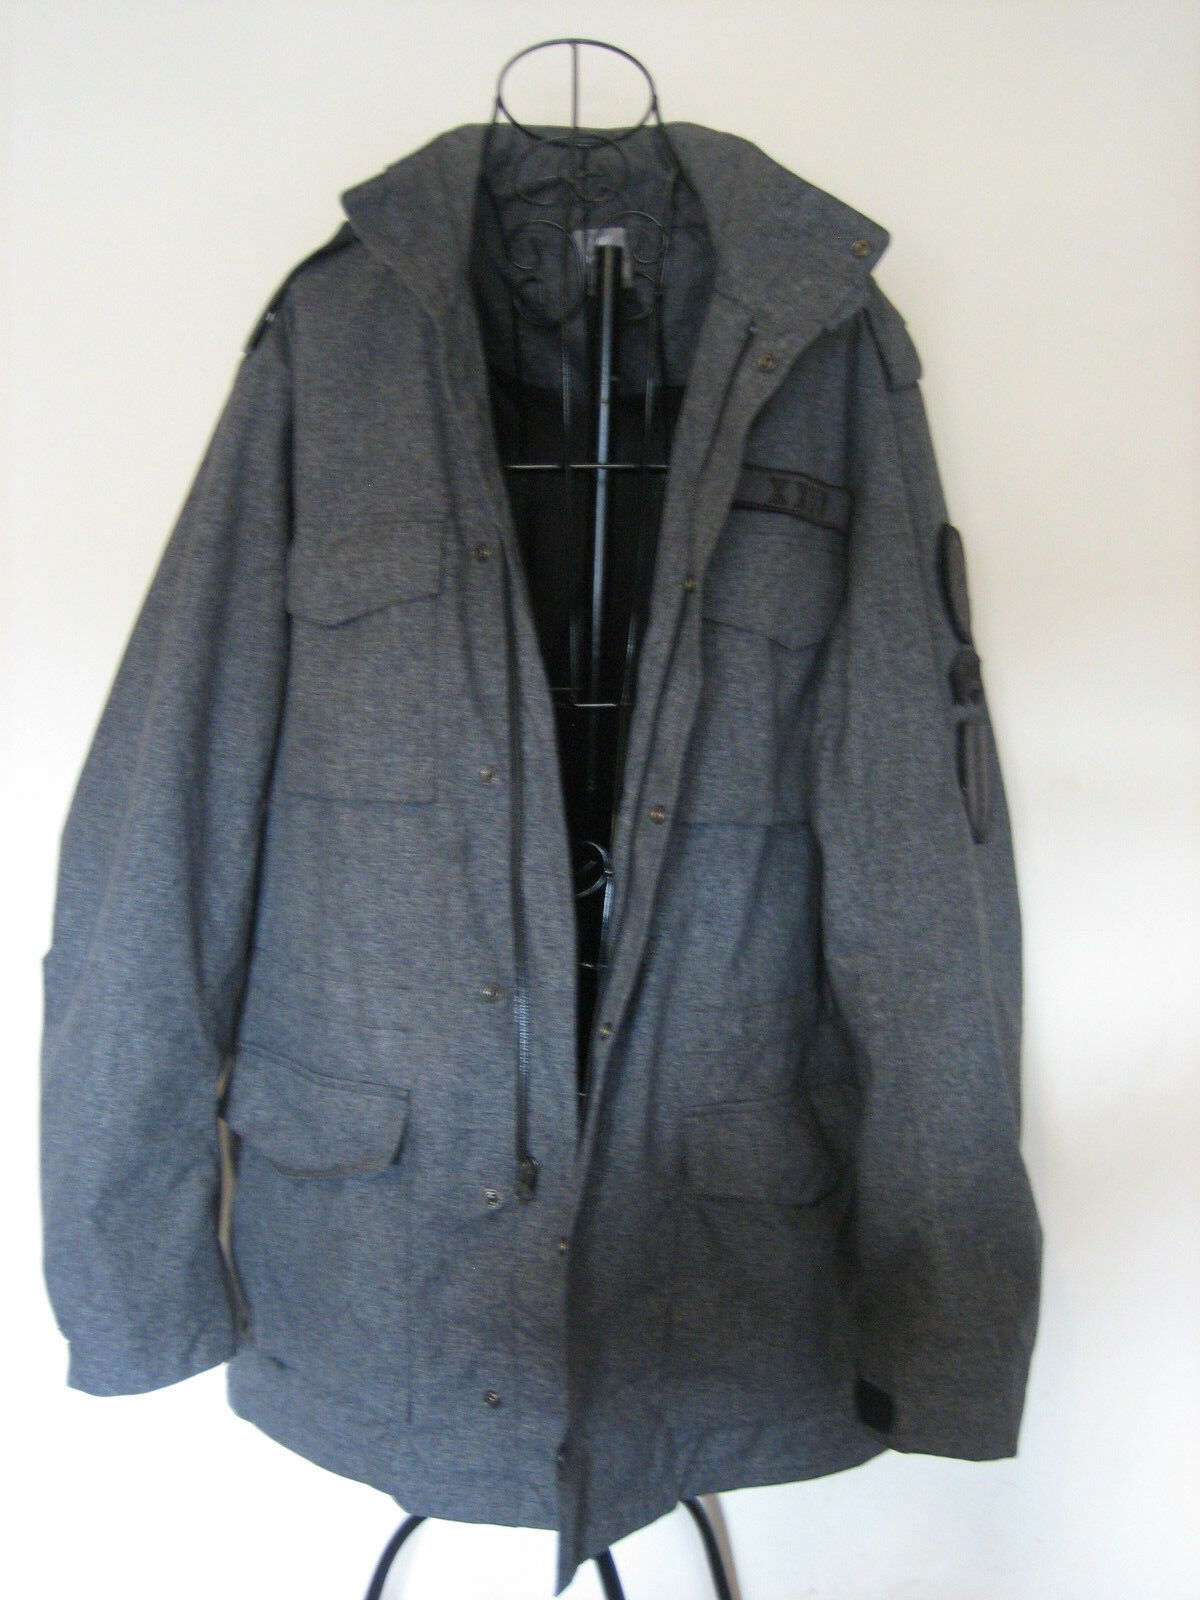 MENS NIKE SPORTSWEAR COAT WITH HOOD IN COLLAR.SIZE EXTRA LARGE